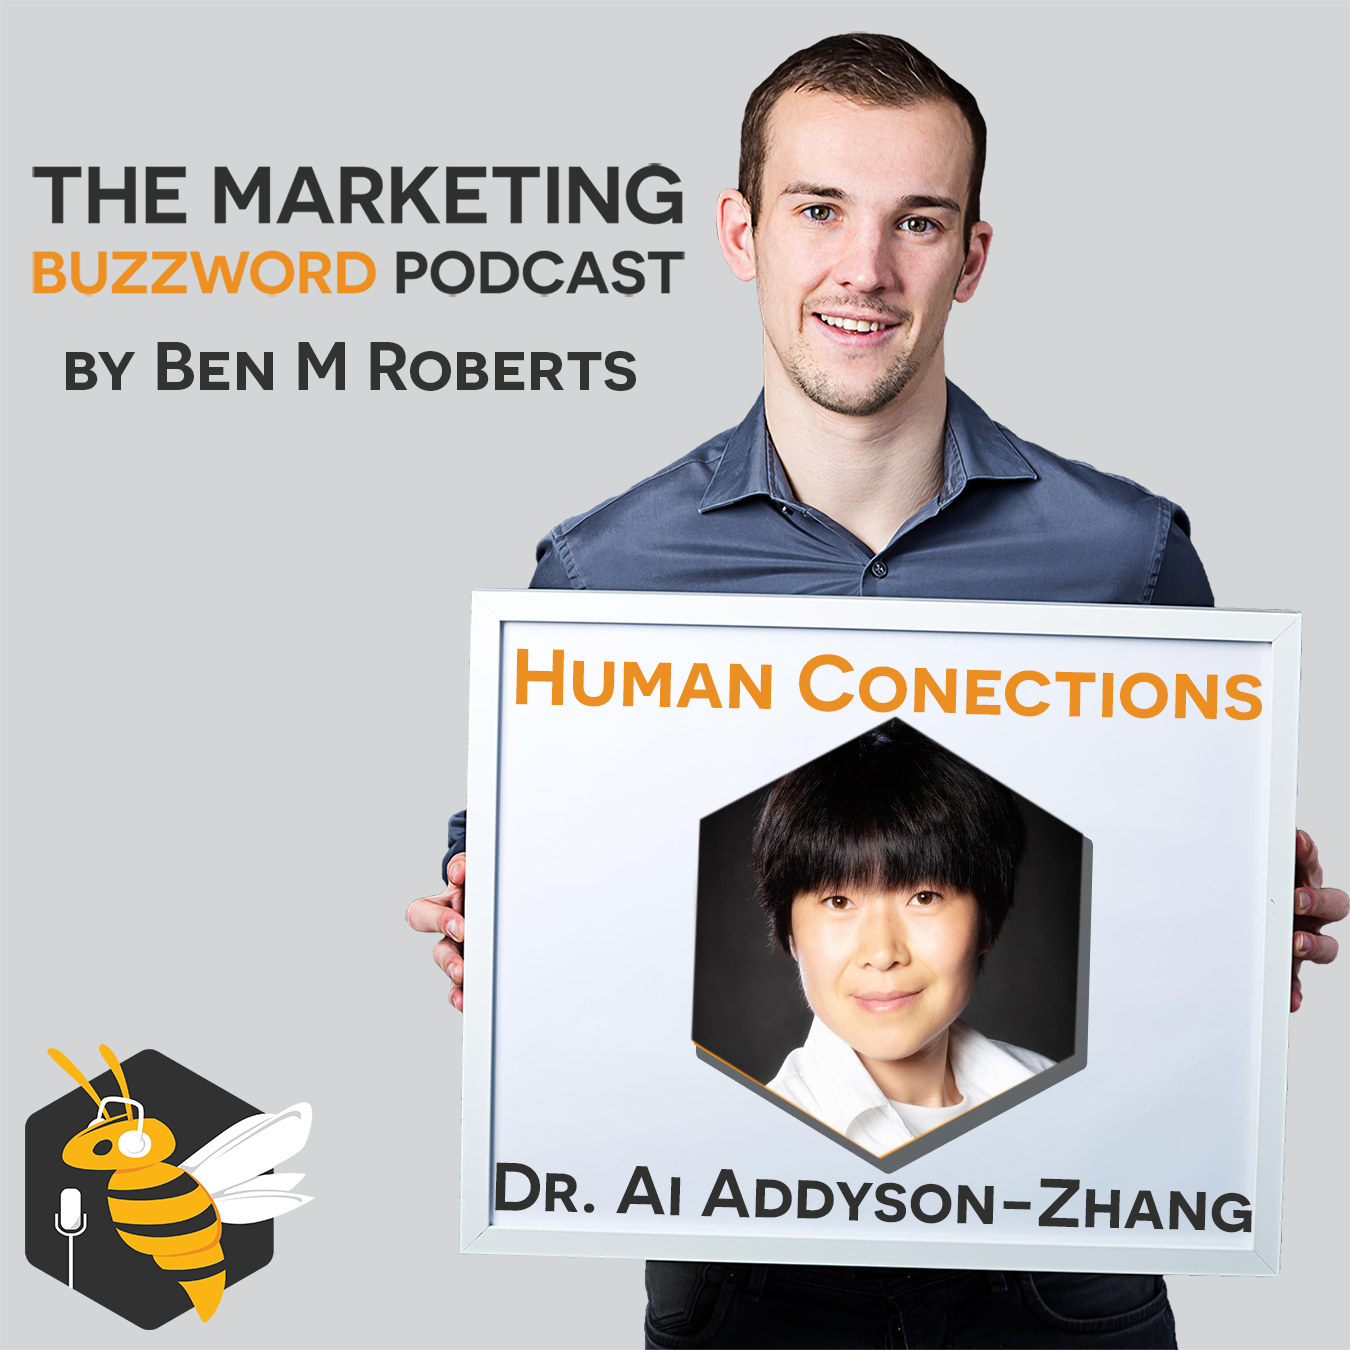 Human Connections - Why is it important to be strategic with the relationships you build? How can be remain human whilst using new marketing technology? What are the 3C's of making human connections?